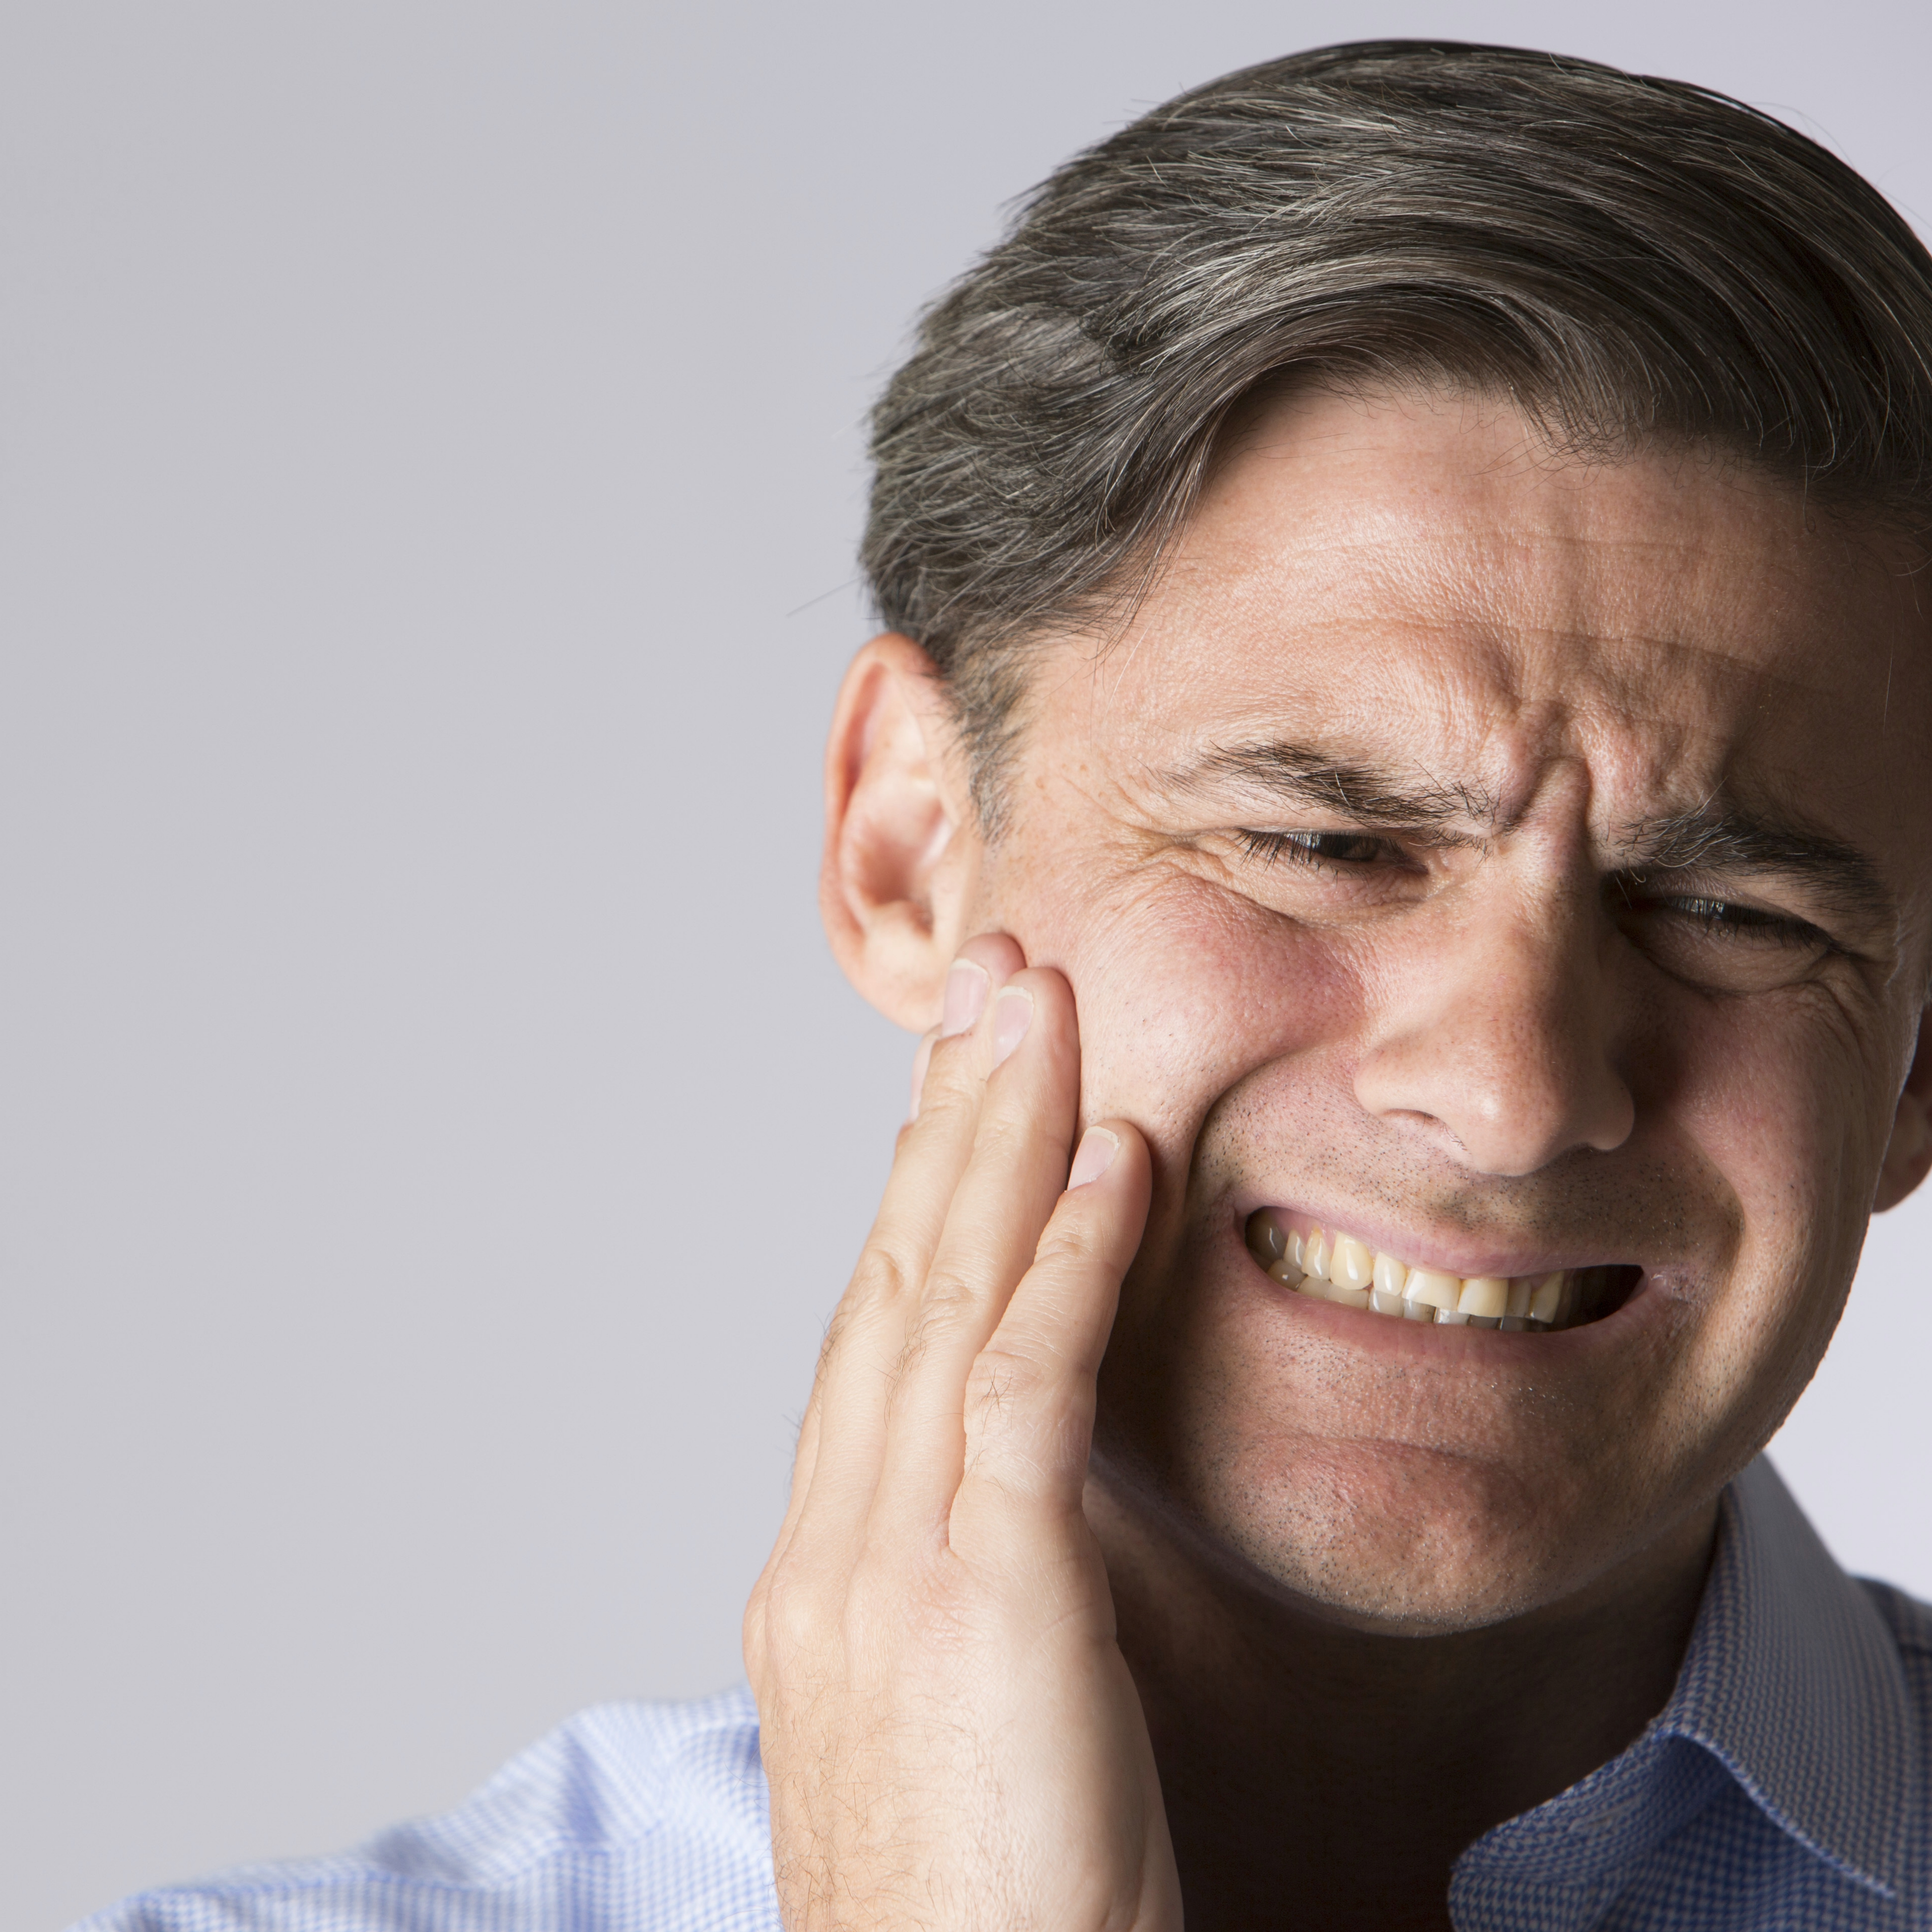 Man suffering with jaw pain or toothache